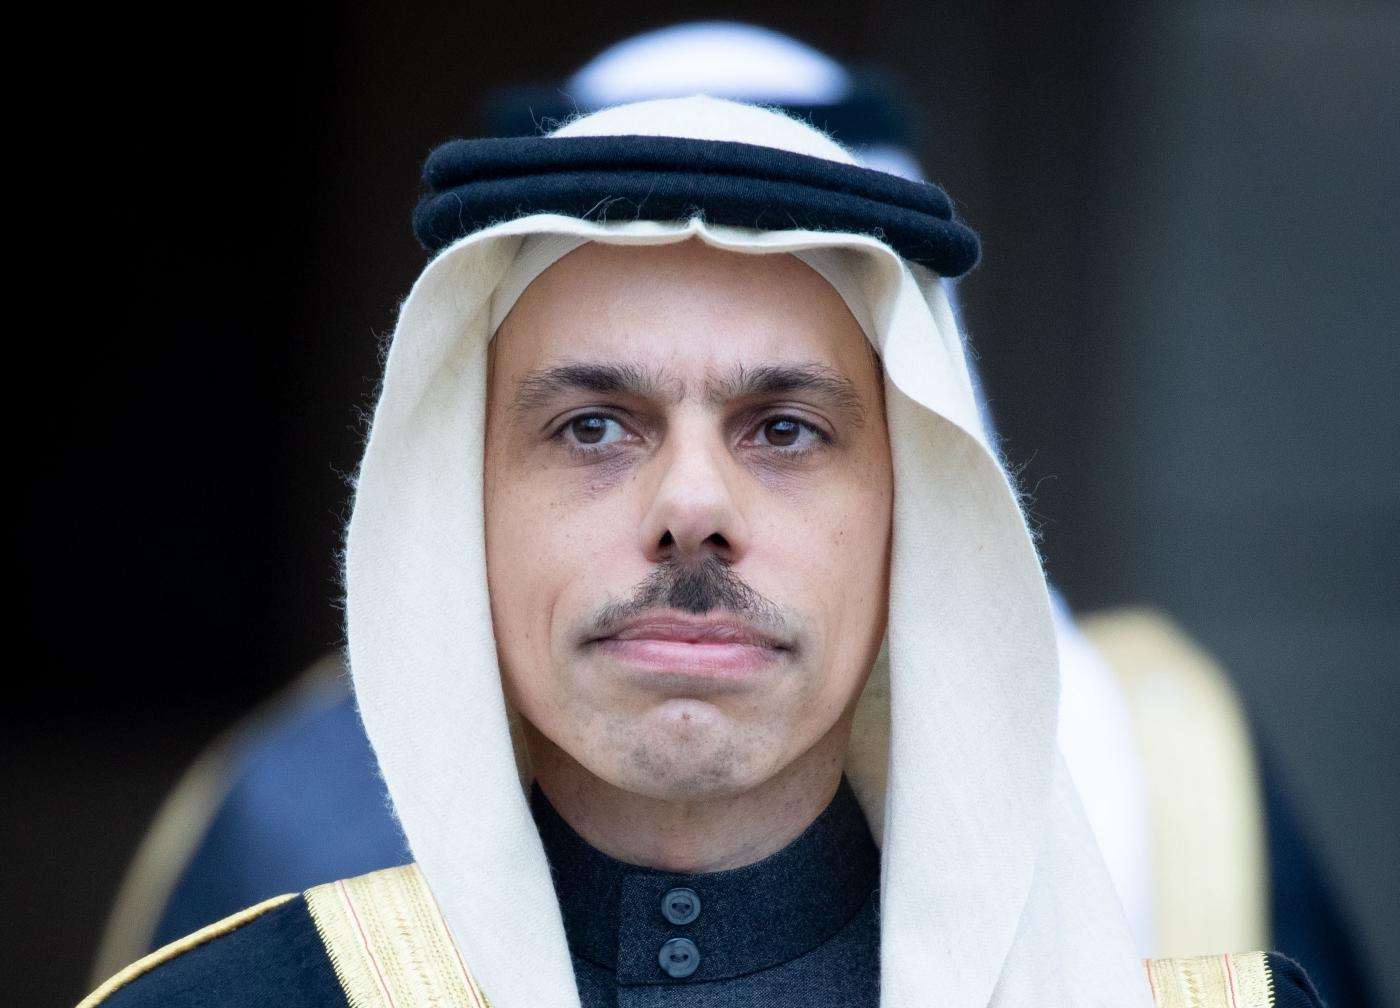 Prince Faisal to convey that Riyadh values its 'long-term strategic partnership' with Pakistan. PHOTO: AFP/FILE